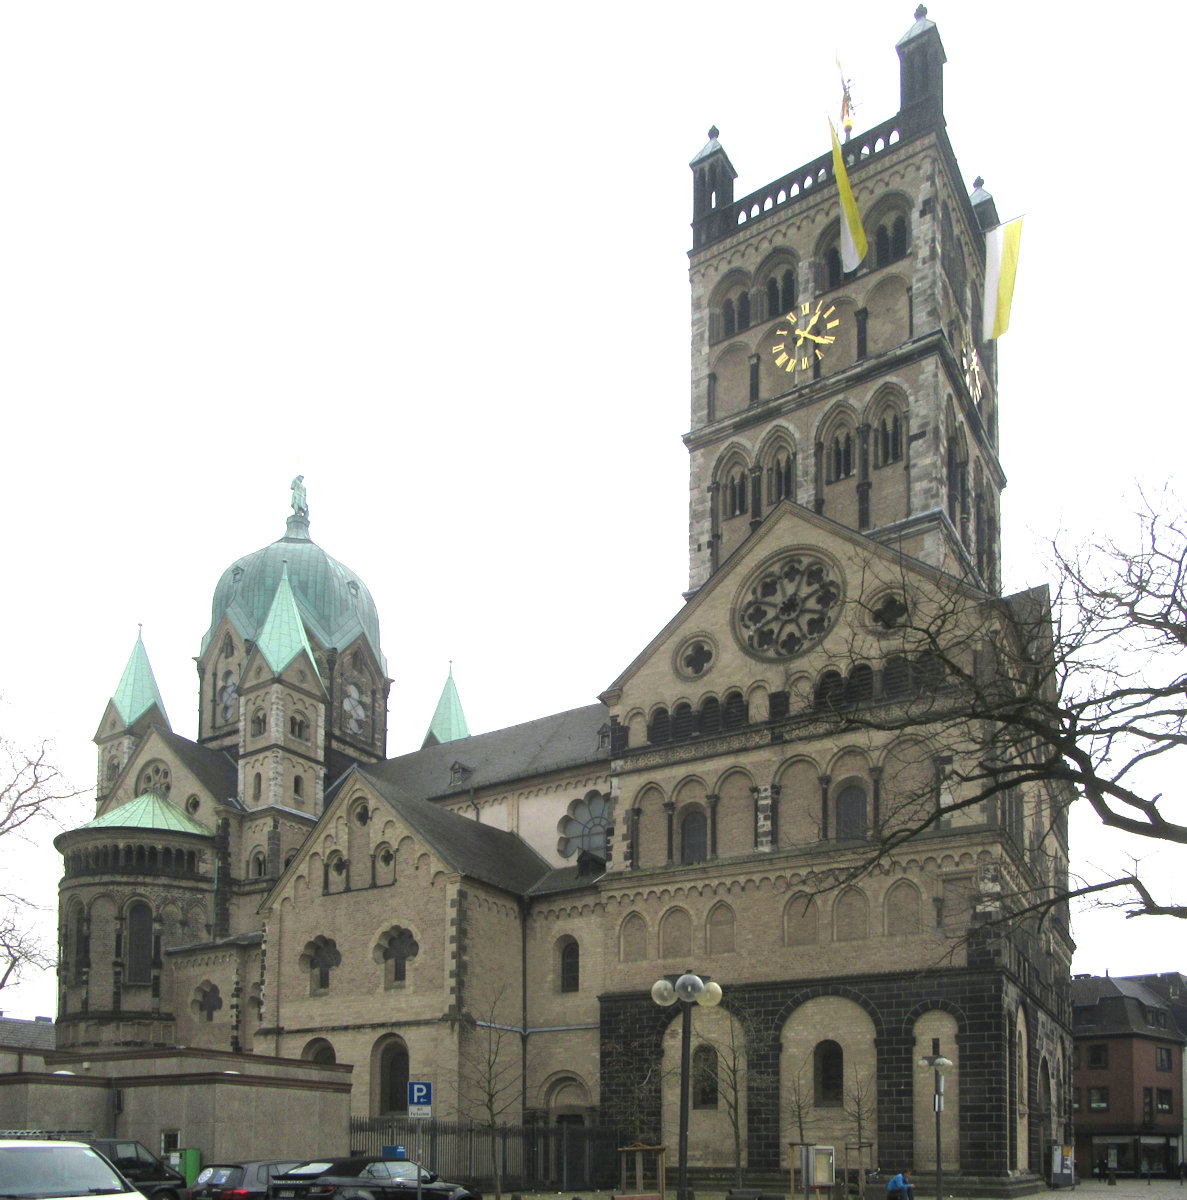 Quirinius-Münster in Neuss